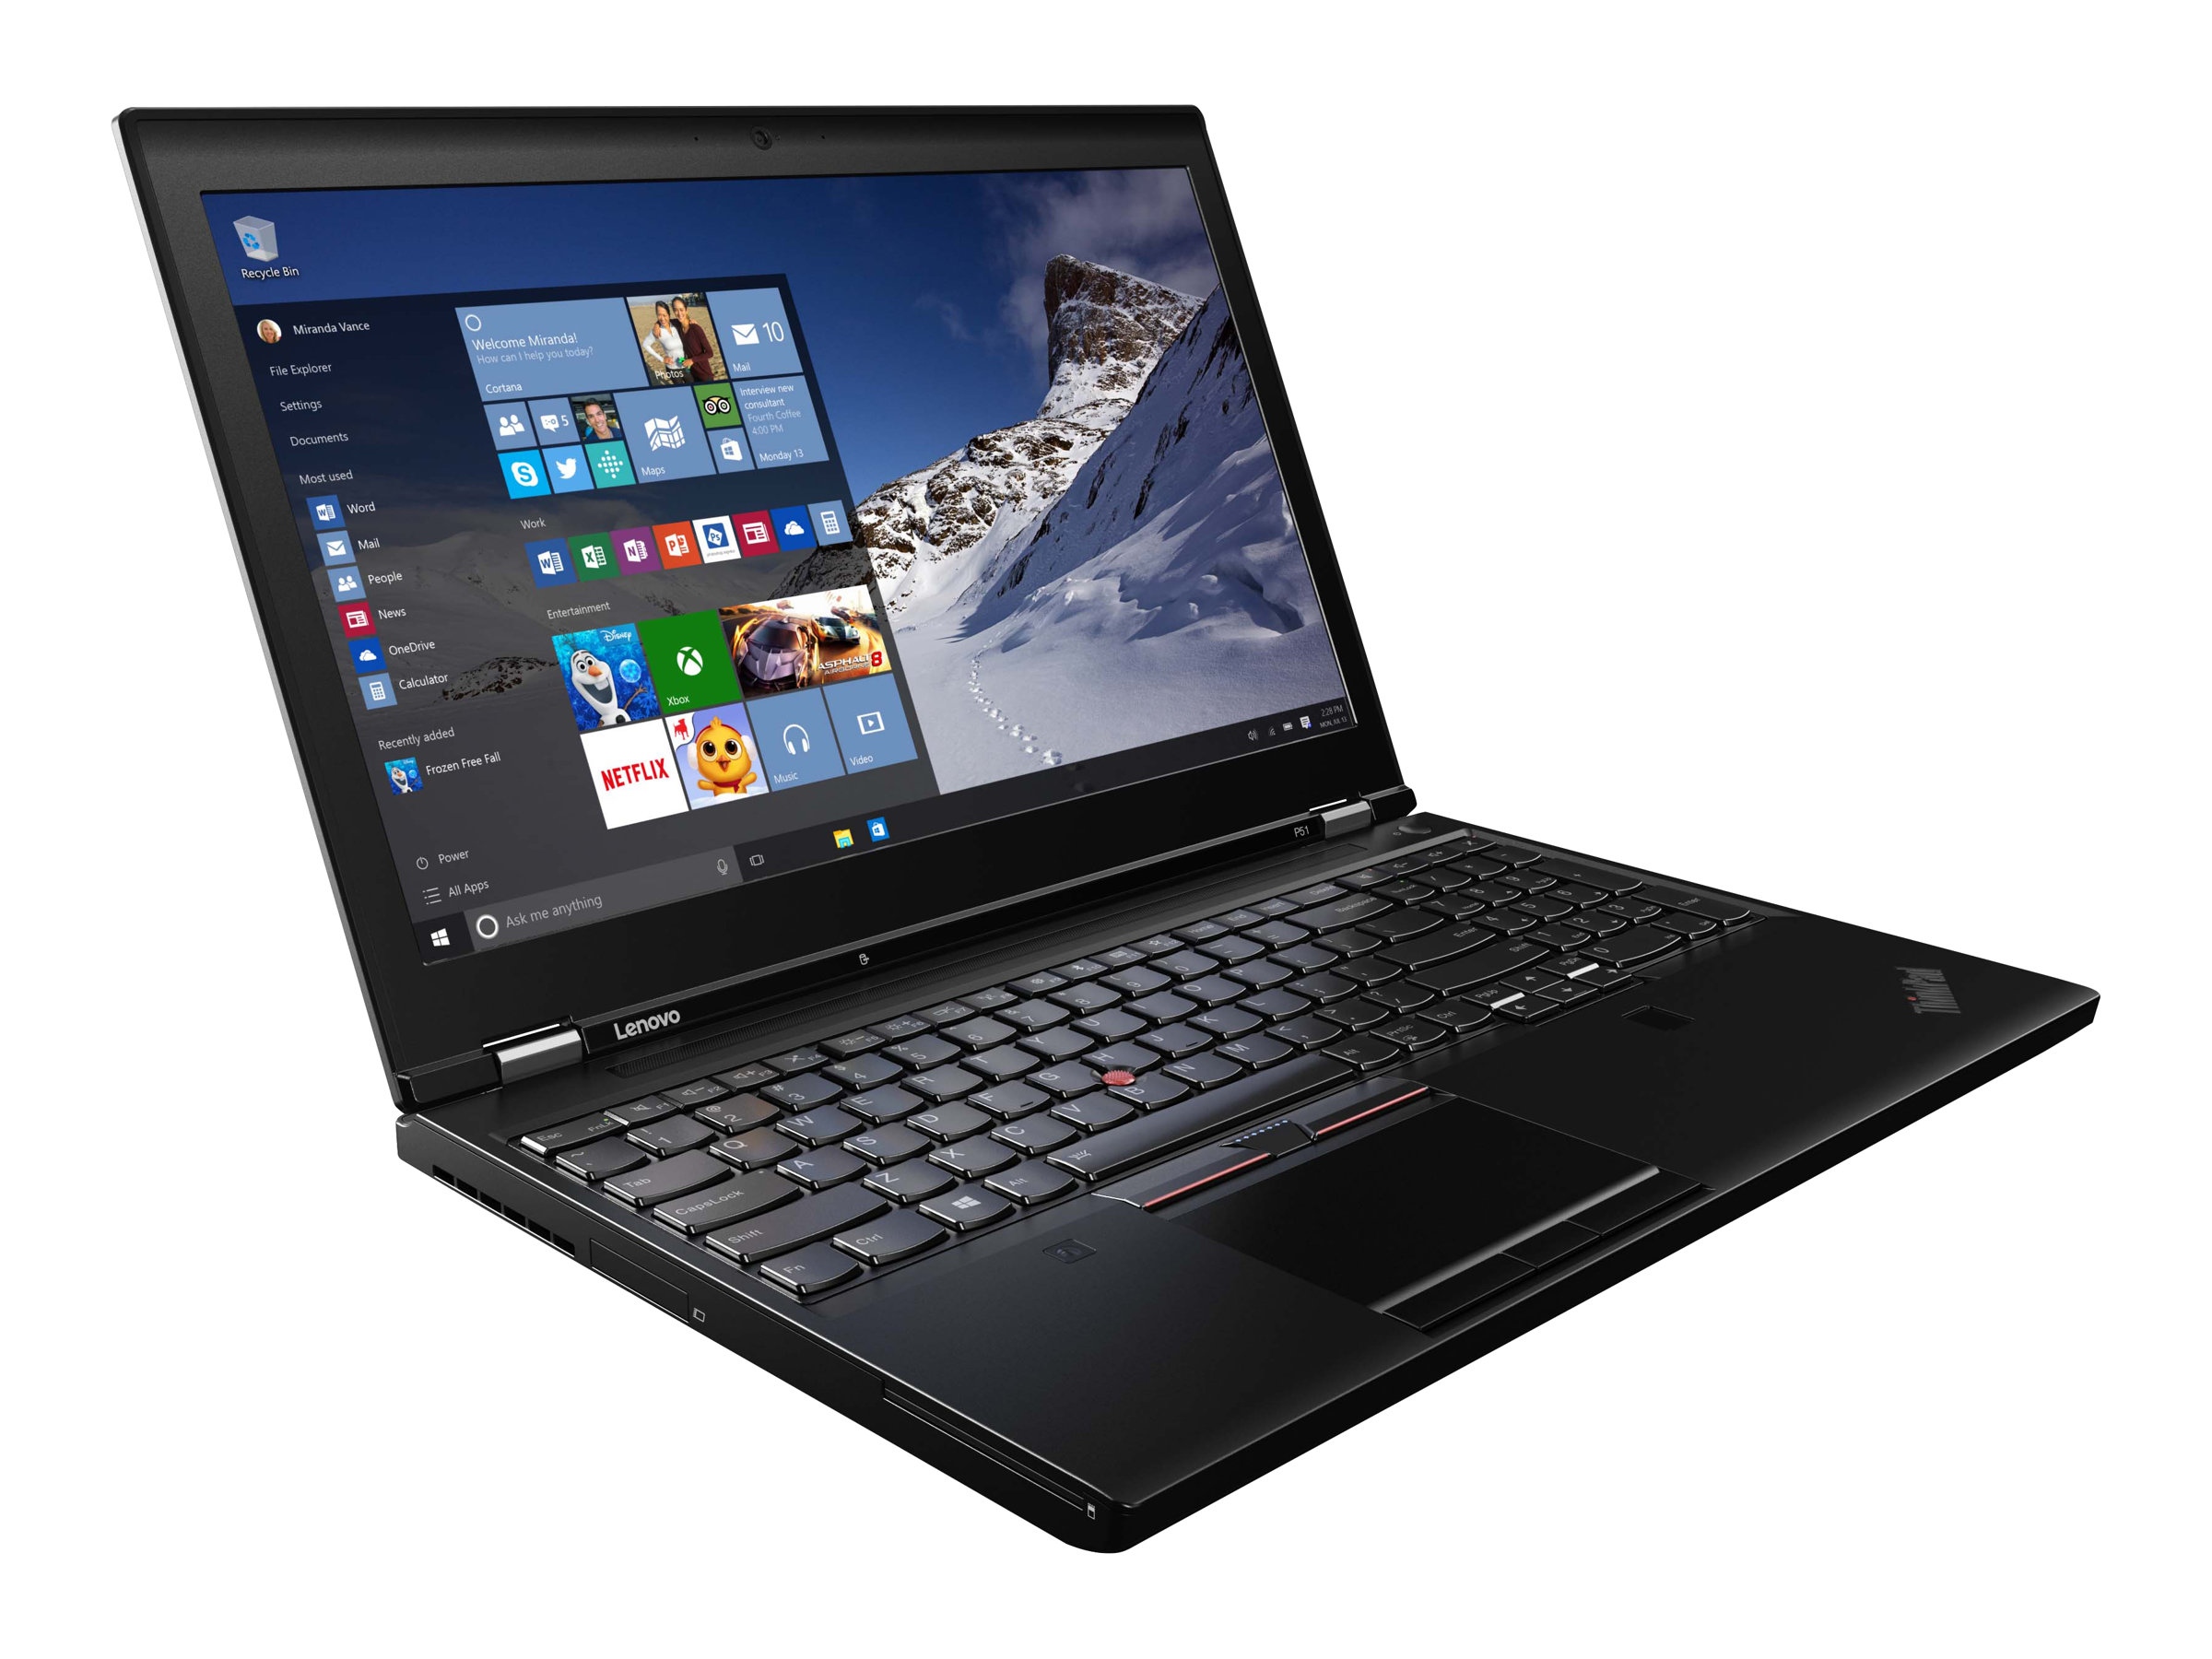 Lenovo ThinkPad P51 20HH - Core i7 7700HQ / 2.8 GHz - Win 10 Pro 64-Bit - 8 GB RAM - 256 GB SSD TCG Opal Encryption 2, NVMe - 39.6 cm (15.6